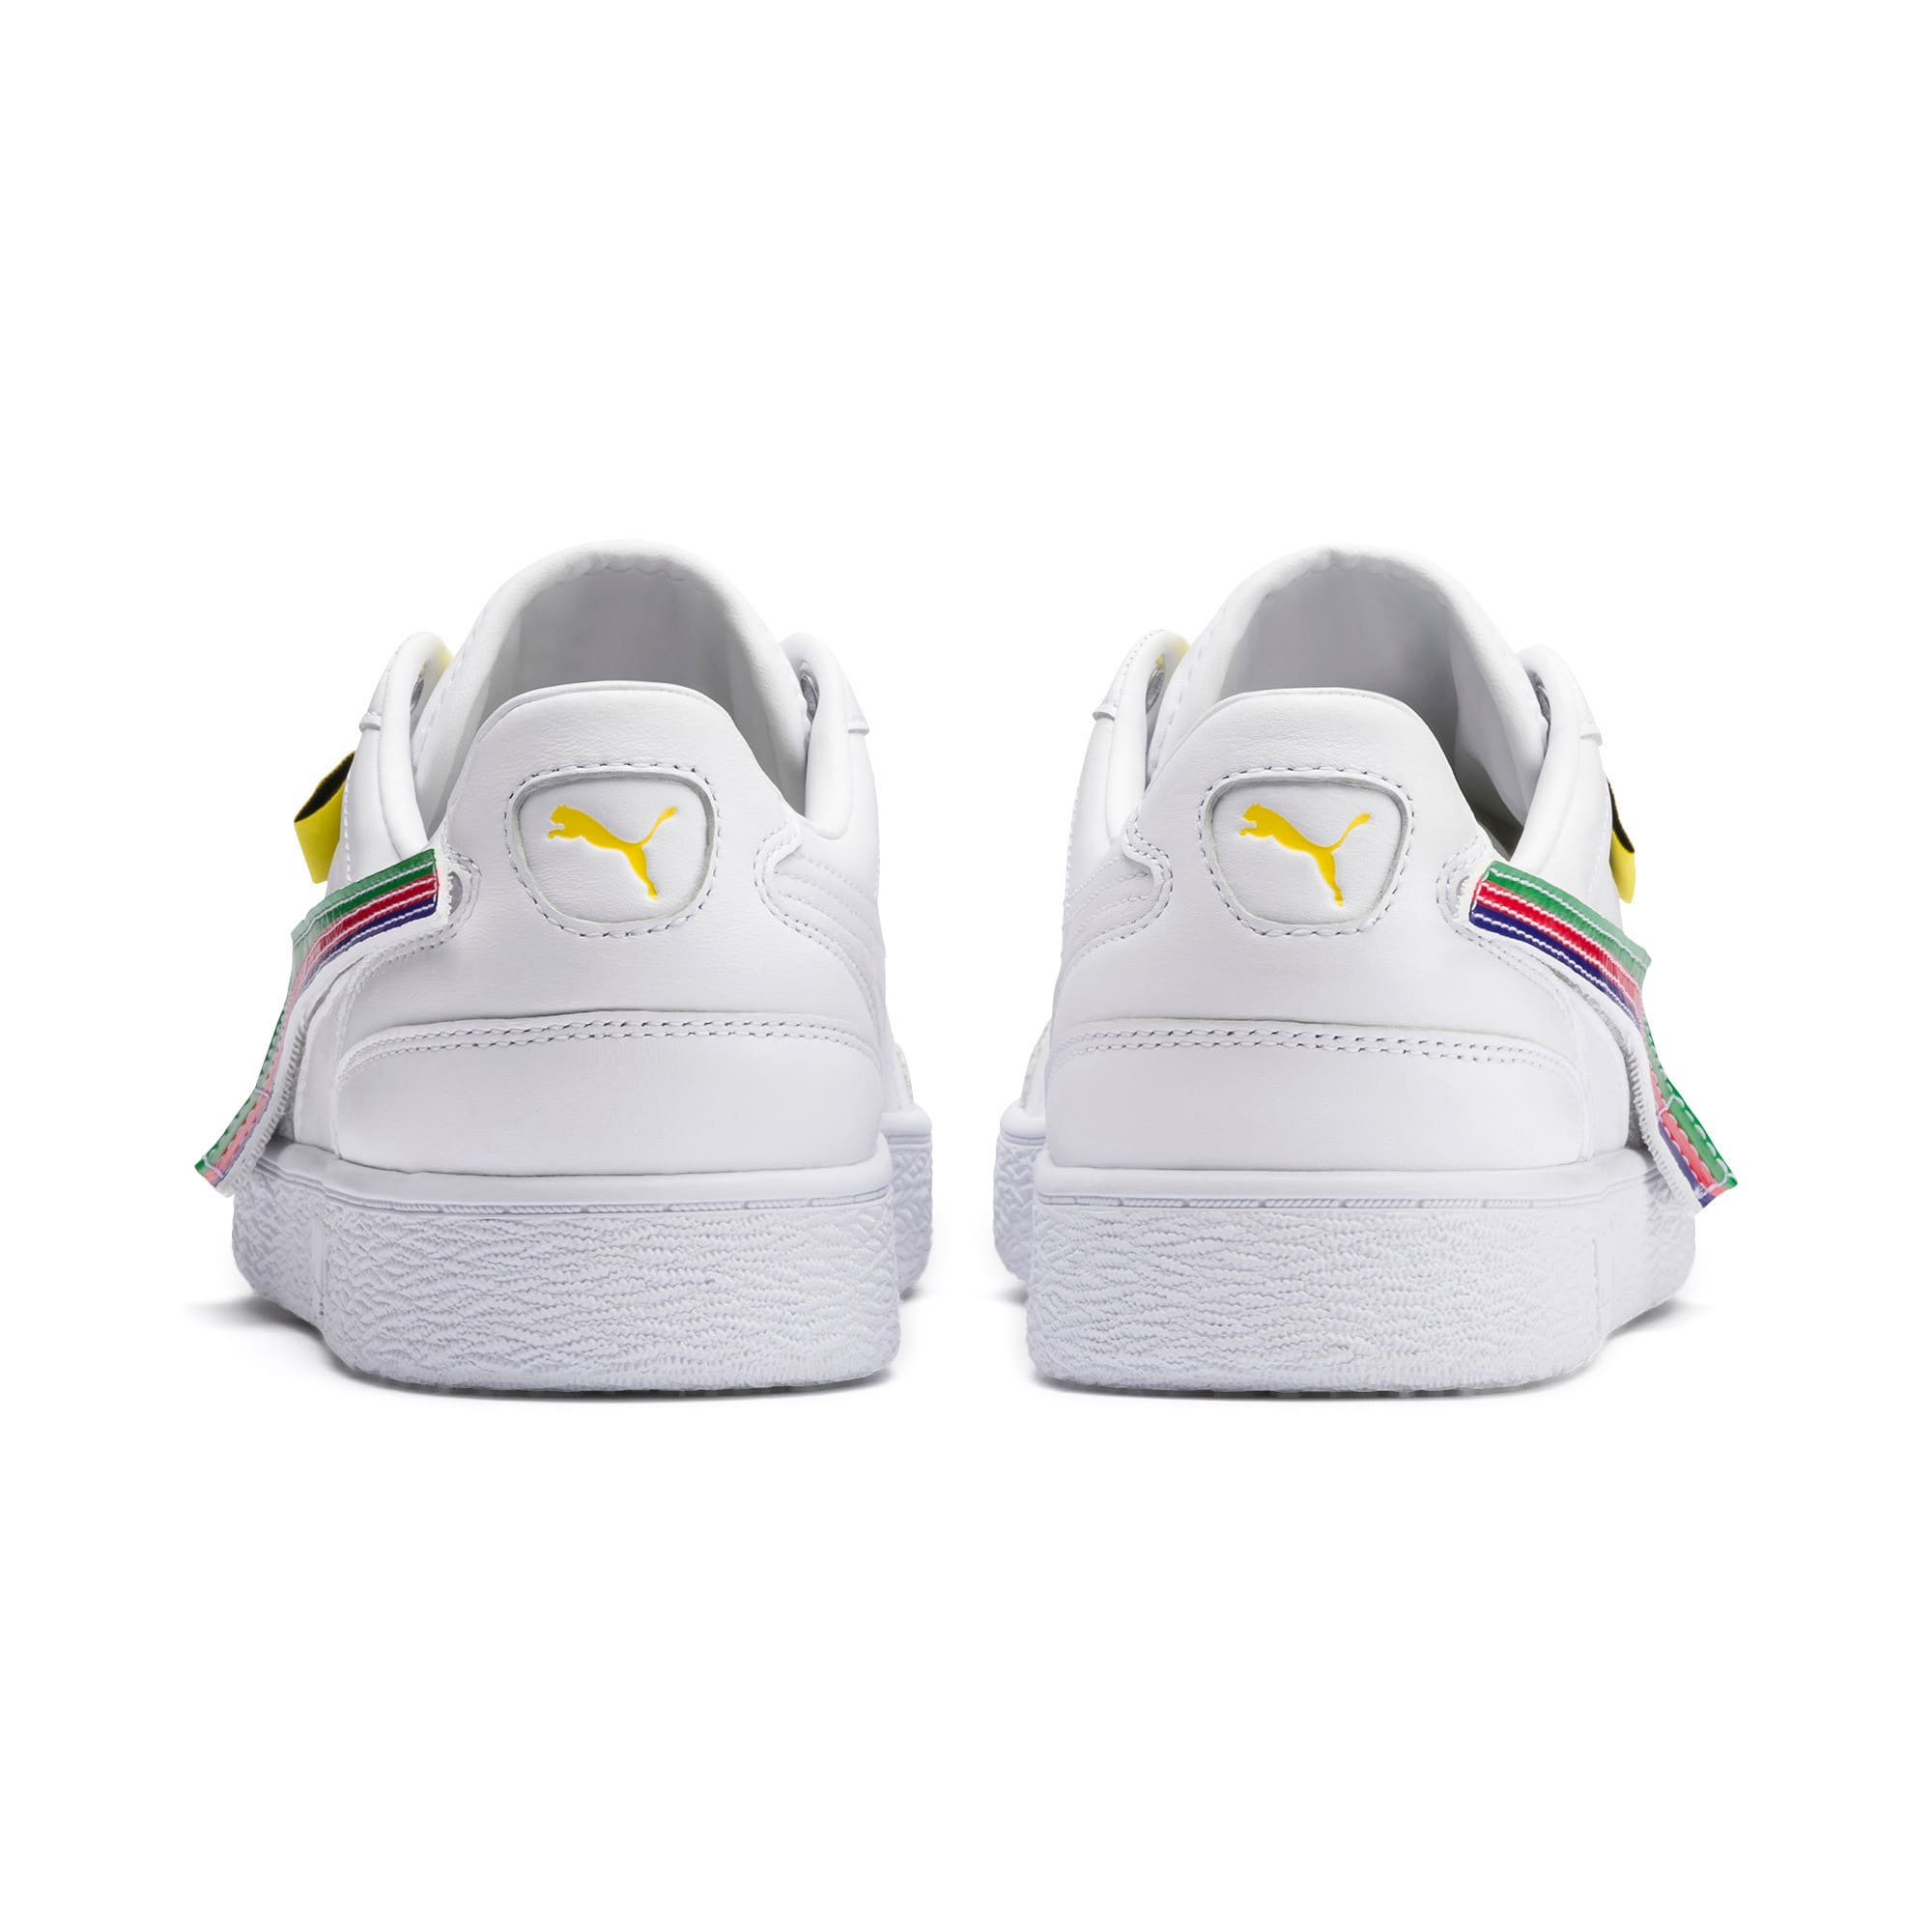 Thumbnail 3 of PUMA x CHINATOWN MARKET Ralph Sampson Lo Sneakers, Puma White, medium